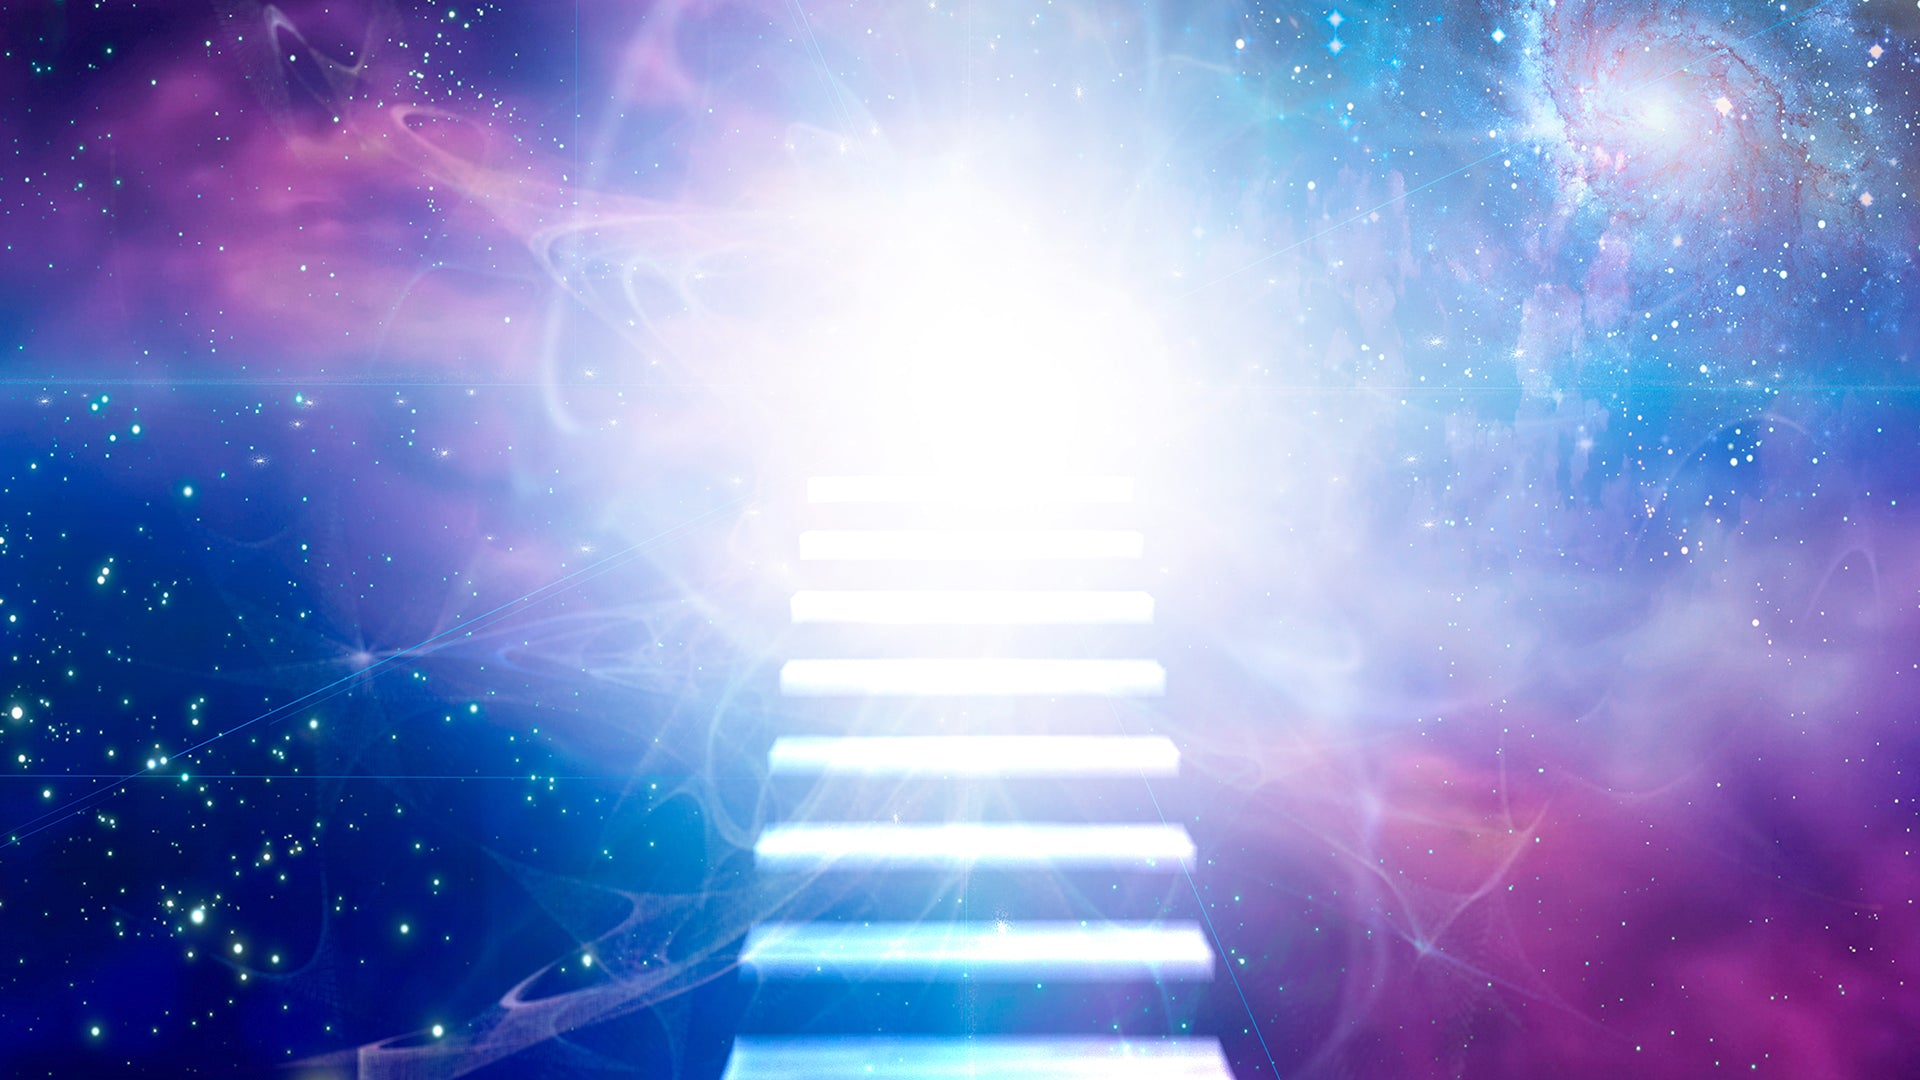 SPIRITUAL ENLIGHTENMENT 💫 All 9 Solfeggio Spiritual Journey Scales Tones 🌈 Solfeggio Matrix Music